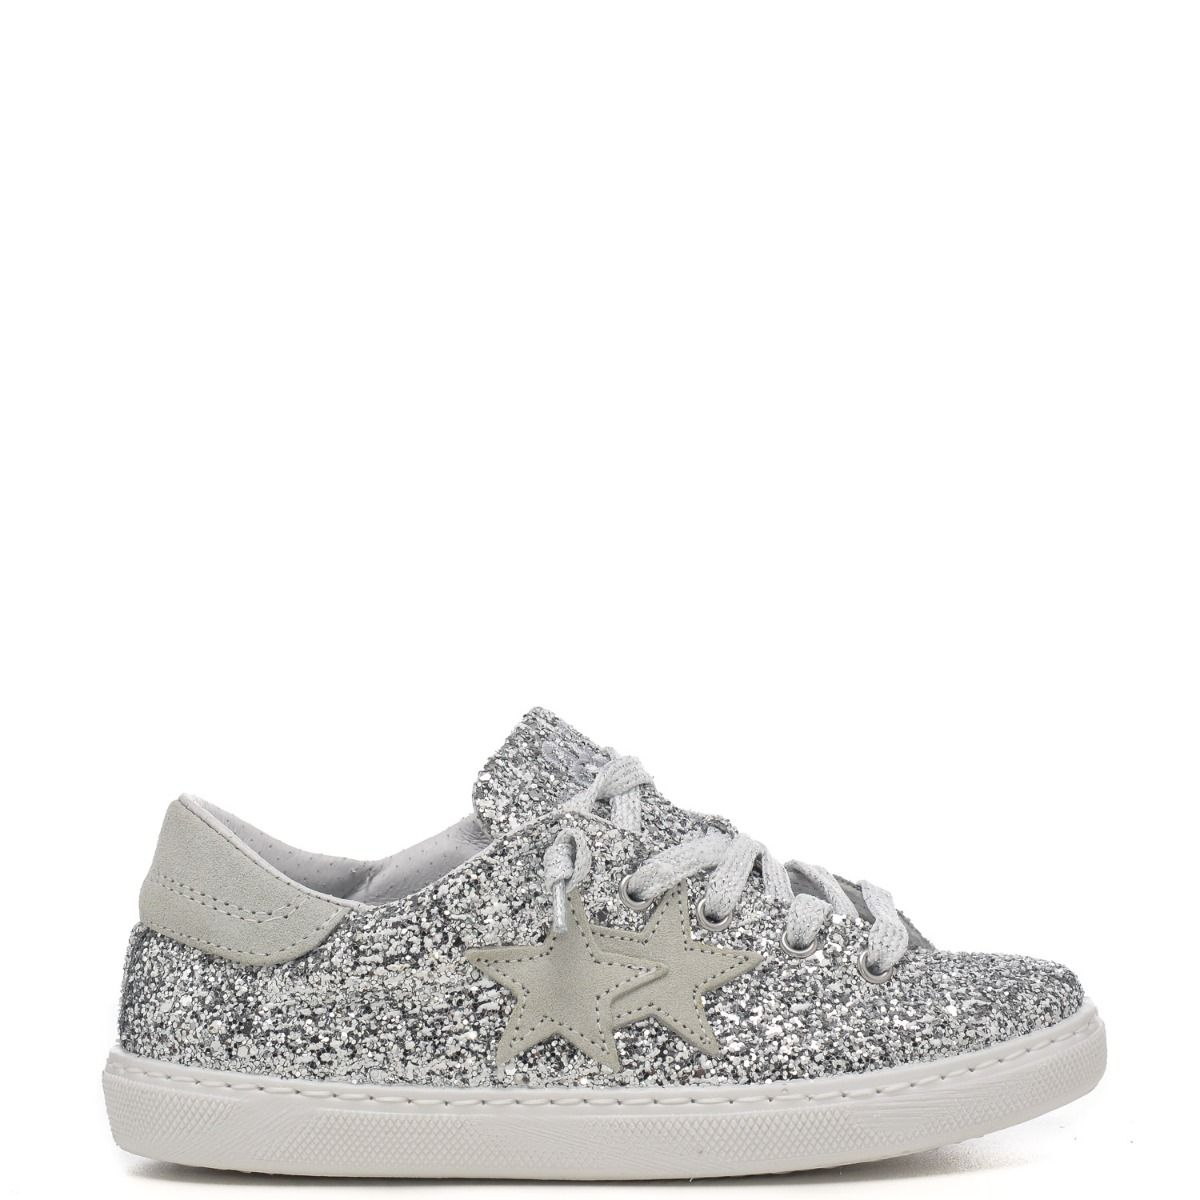 2 Star sneakers bimba 2SB1641